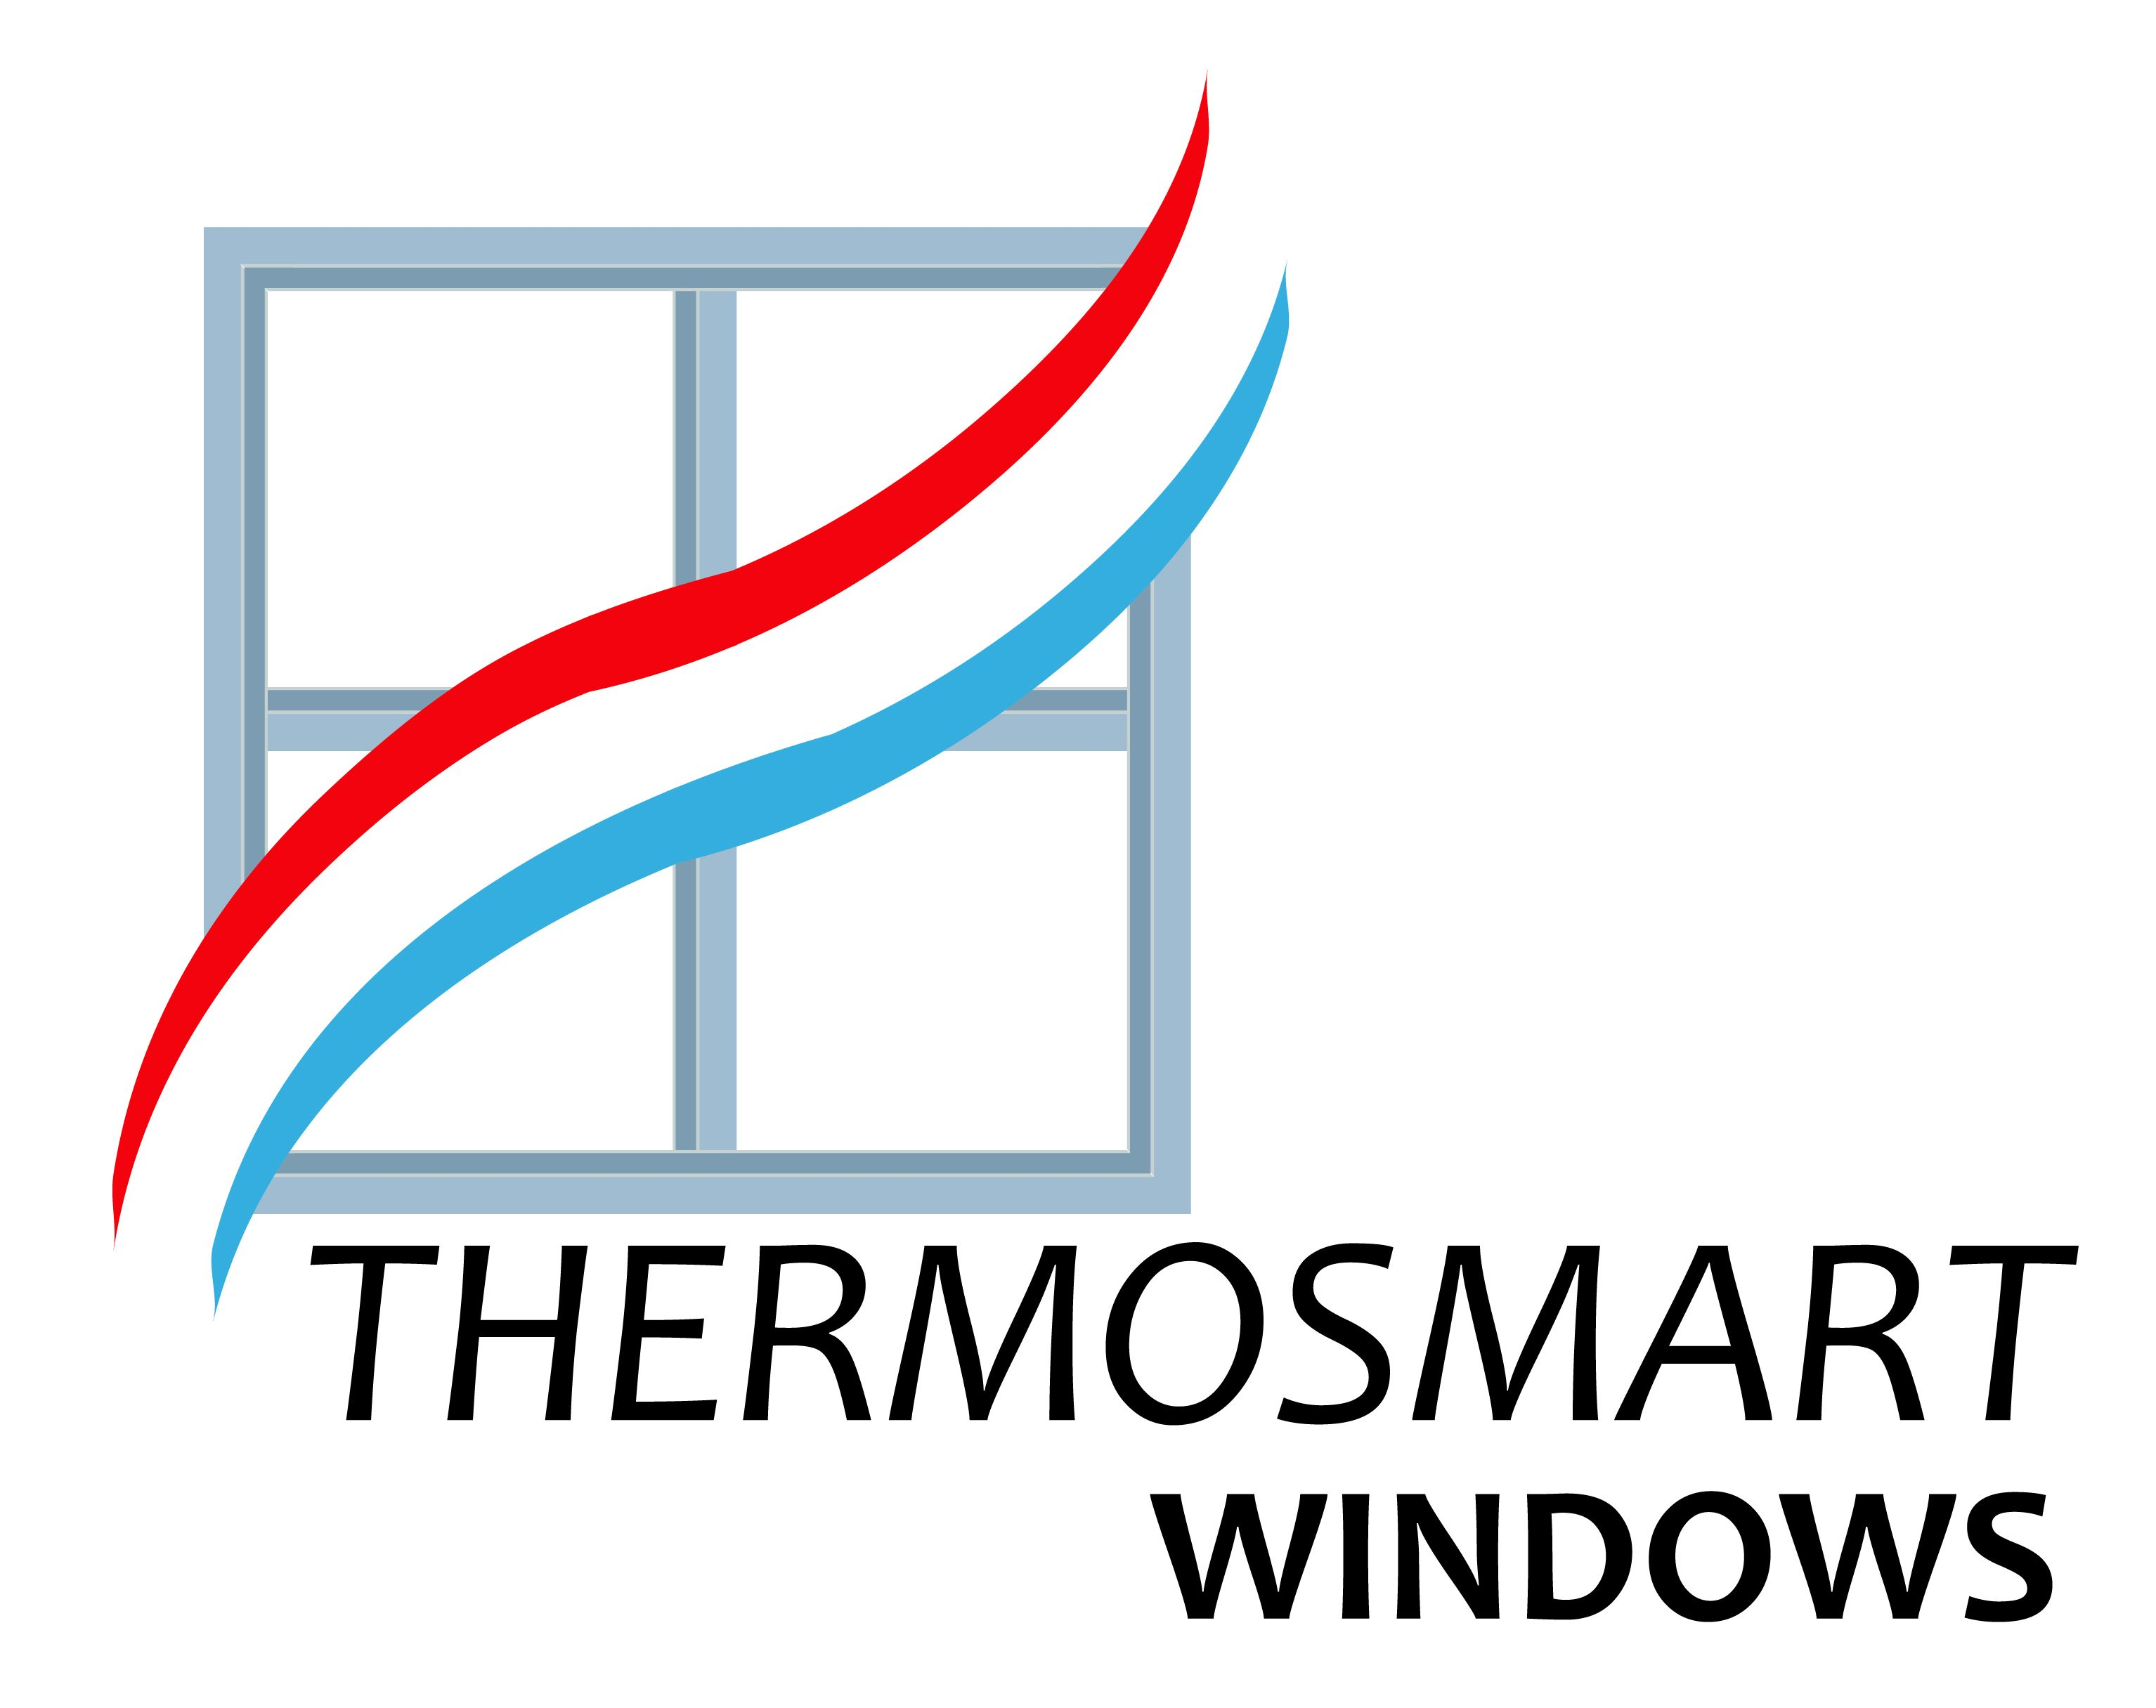 ThermosmartWindows